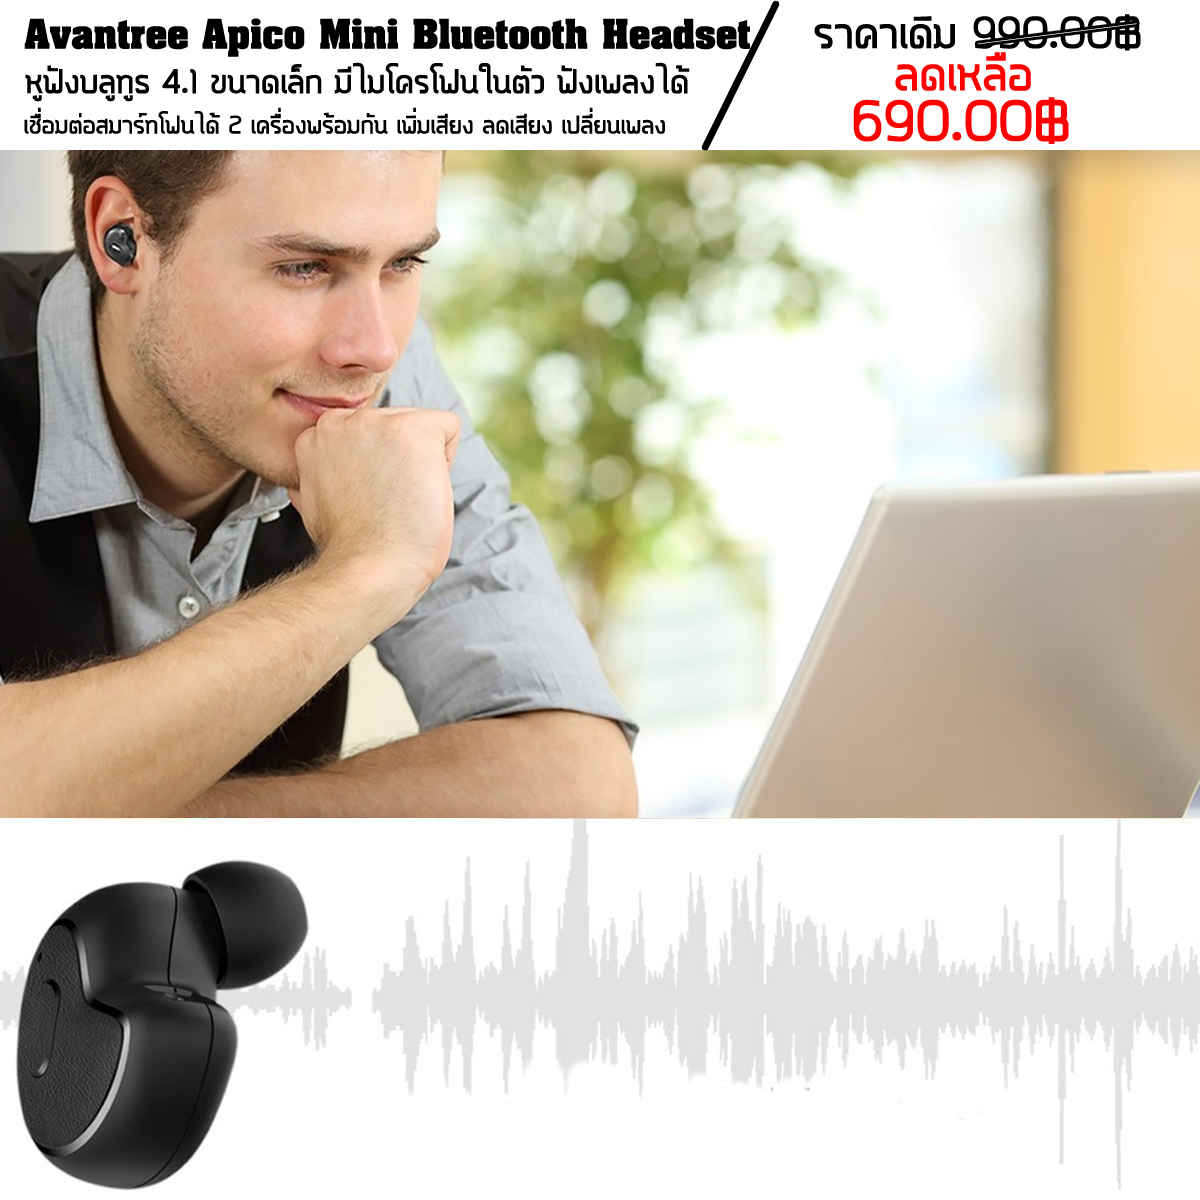 avantree-apico-mini-bluetooth-headset